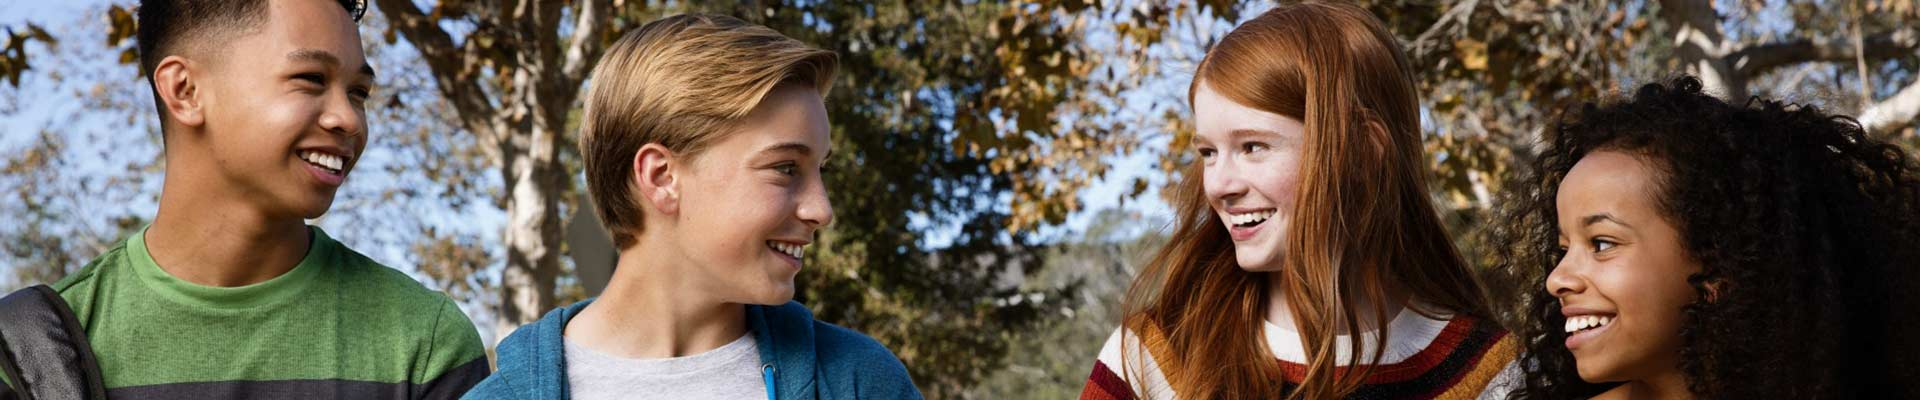 Invisalign Teen Crist & Wenande Orthodontics in Sioux Falls & Yankton SD